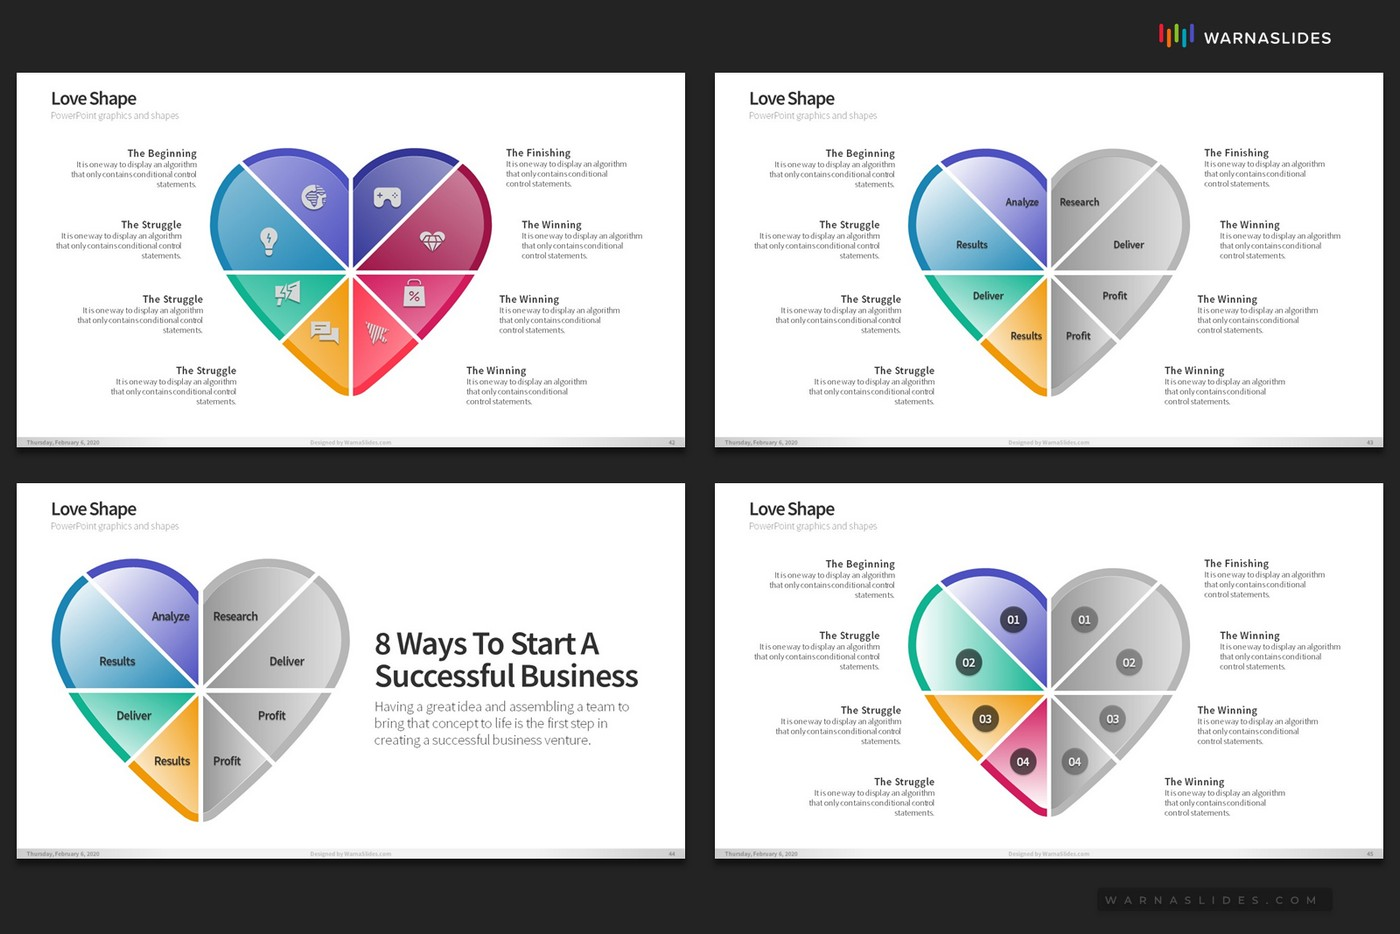 Love-Heart-Medical-PowerPoint-Template-for-Business-Pitch-Deck-Professional-Creative-PowerPoint-Icons-013